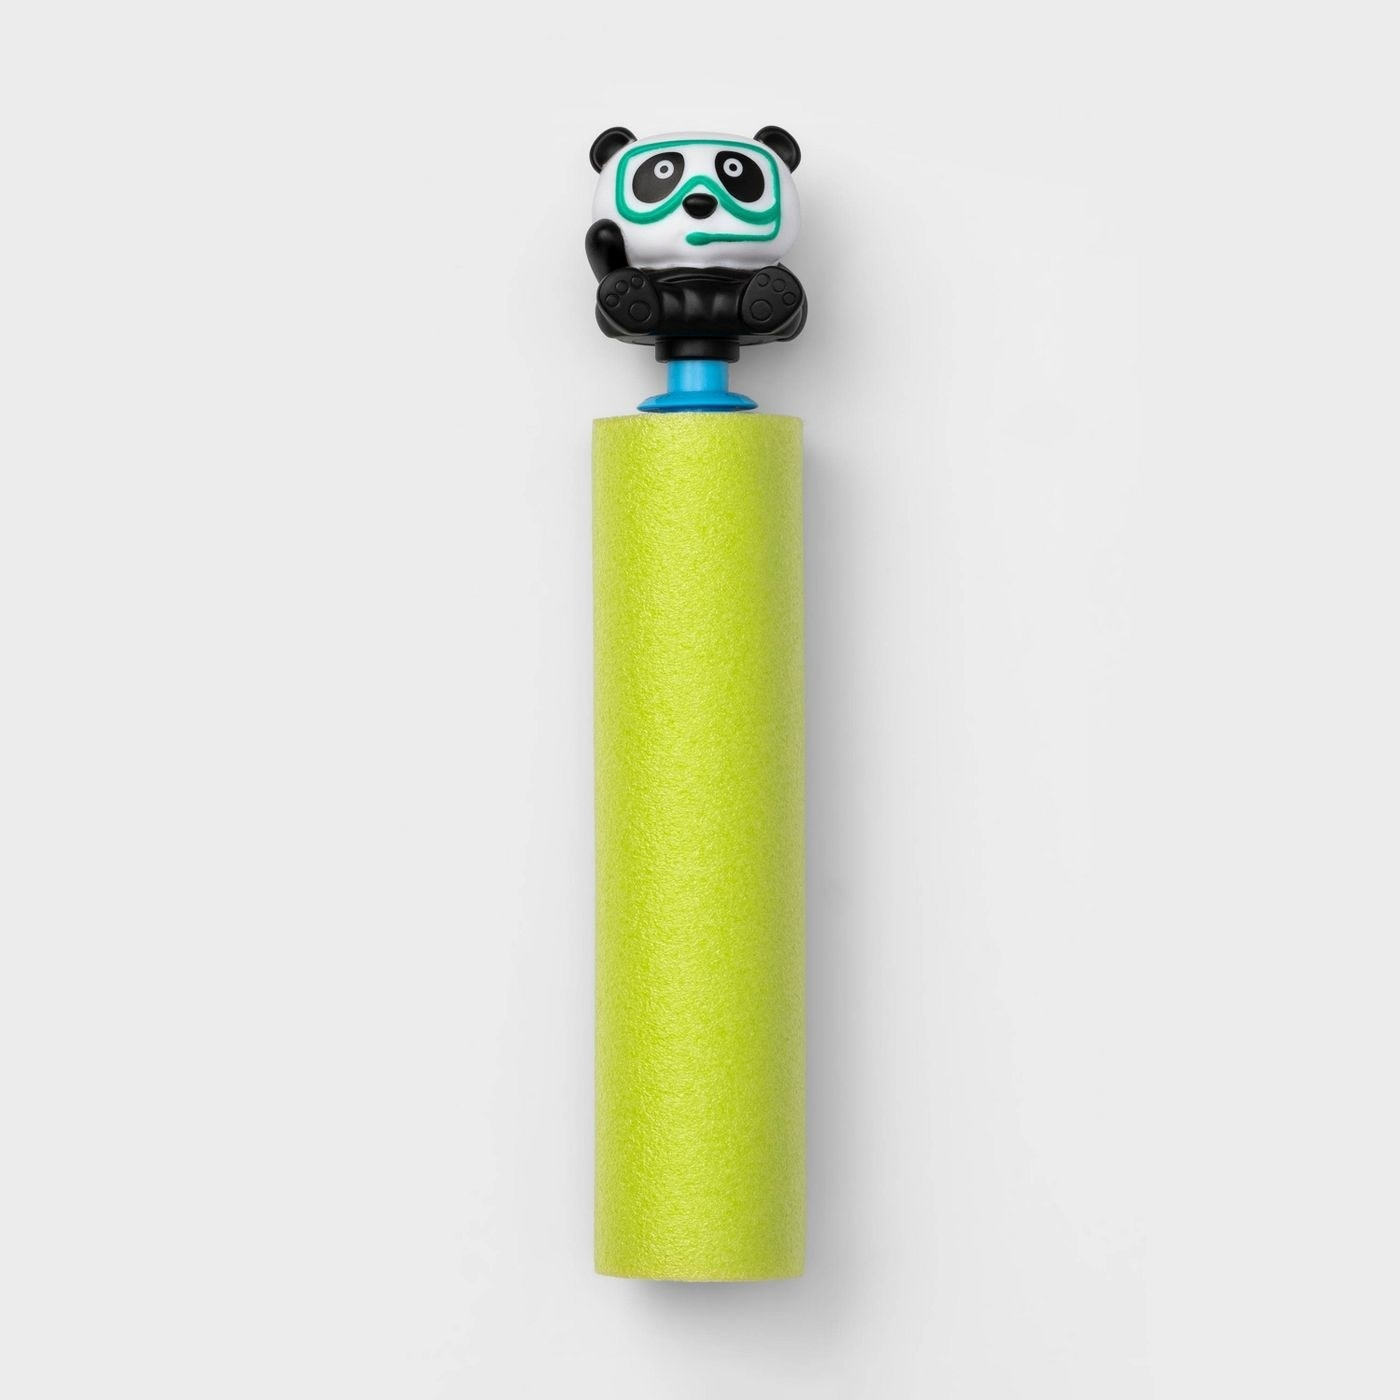 The foam blaster with a pump handle shaped like a panda wearing a snorkel